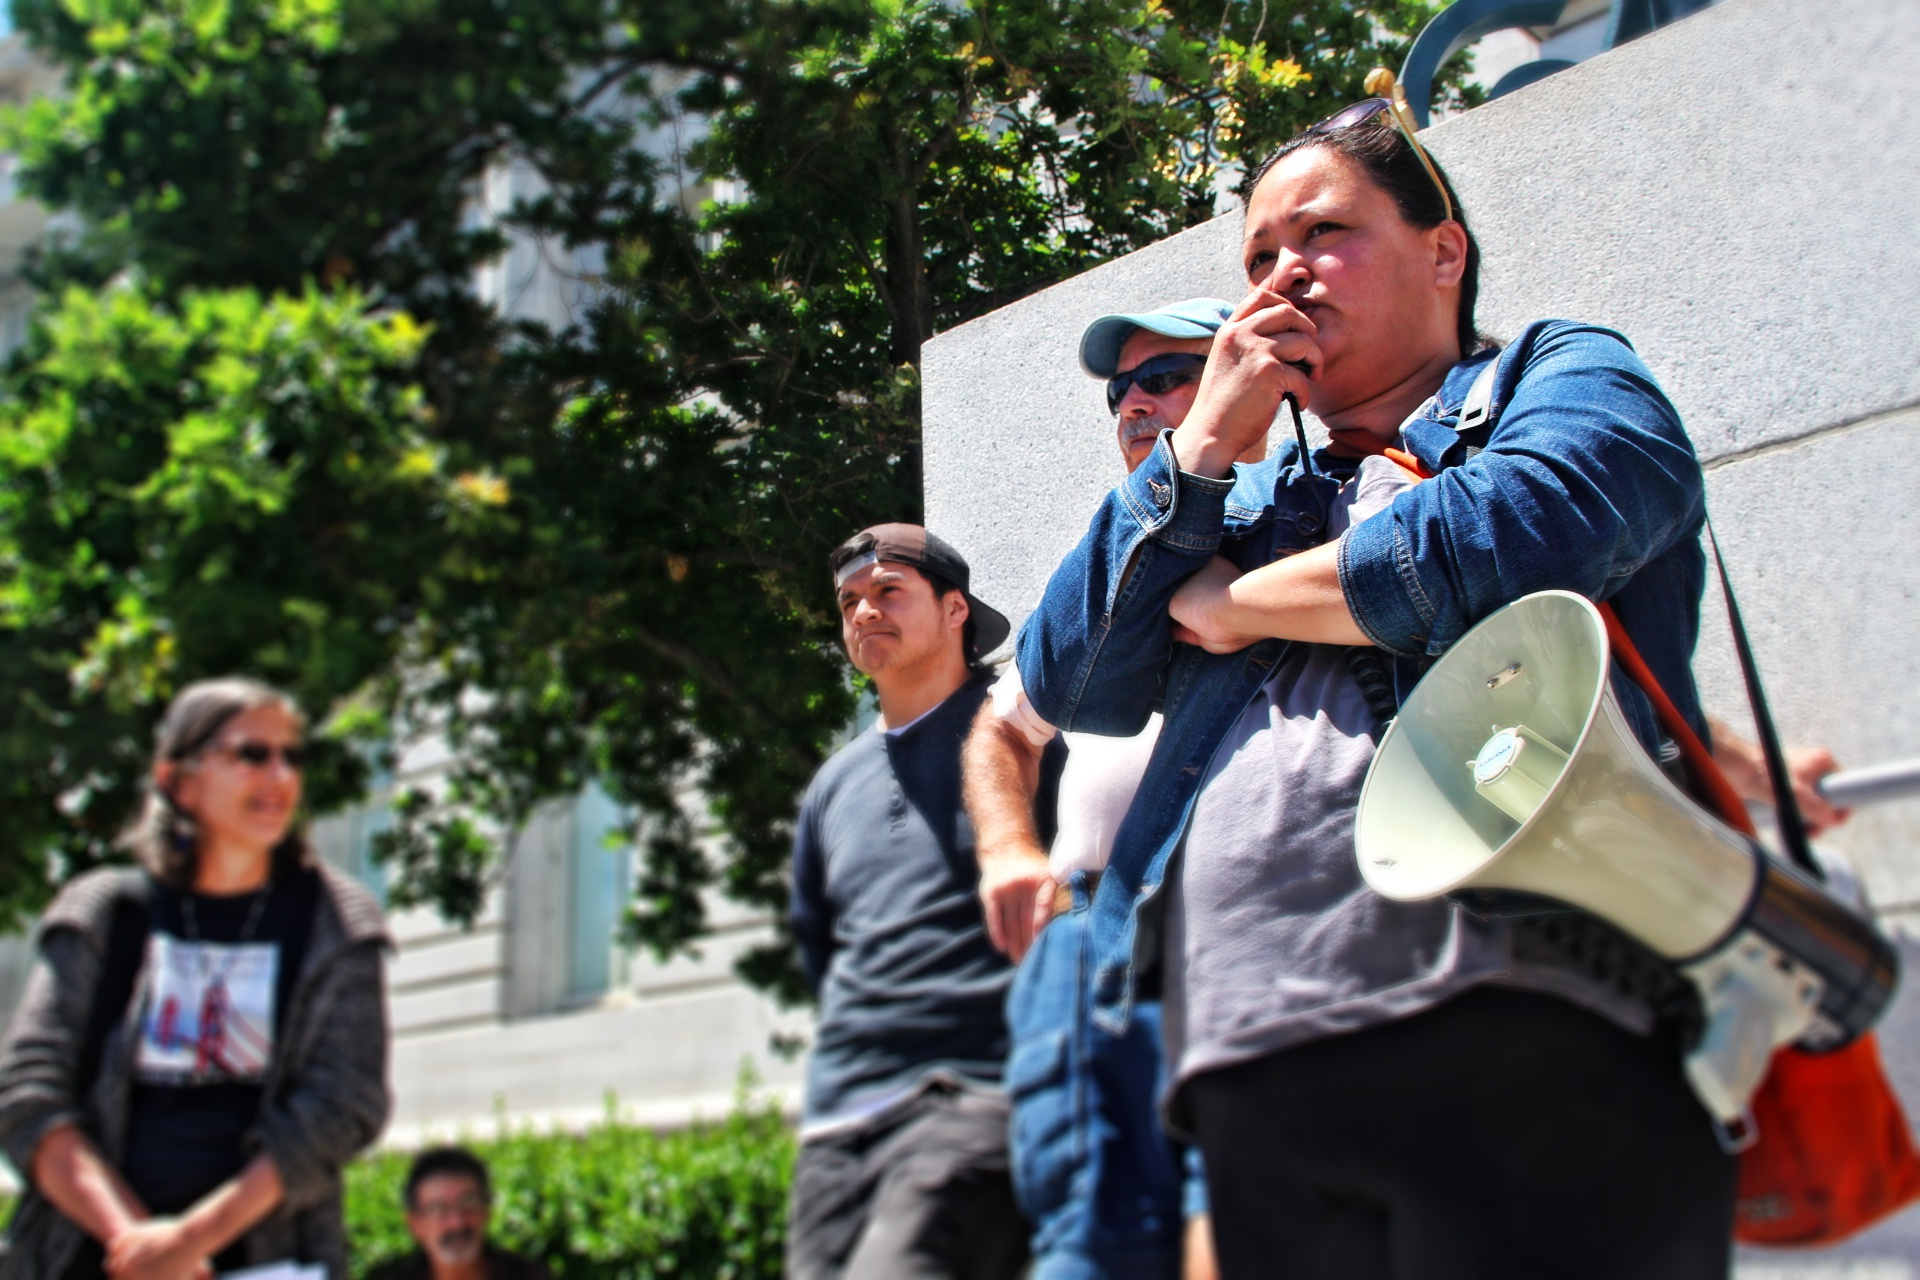 Grace Martinez, ACCE, addressed a group of supporters outside City Hall. Photo by Sana Saleem.